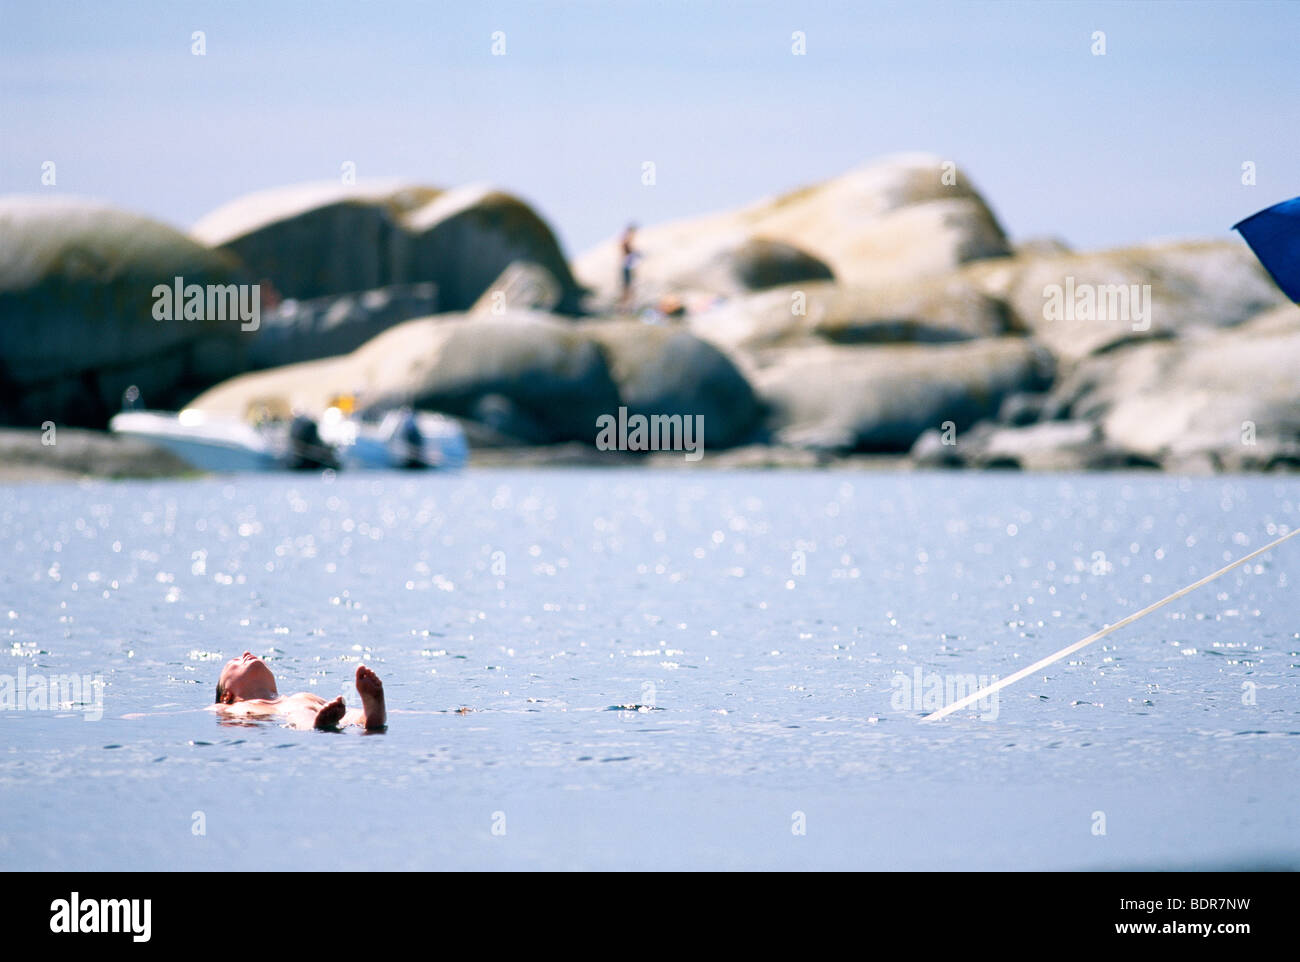 A woman swimming in the ocean, Vastkusten, Sweden. - Stock Image